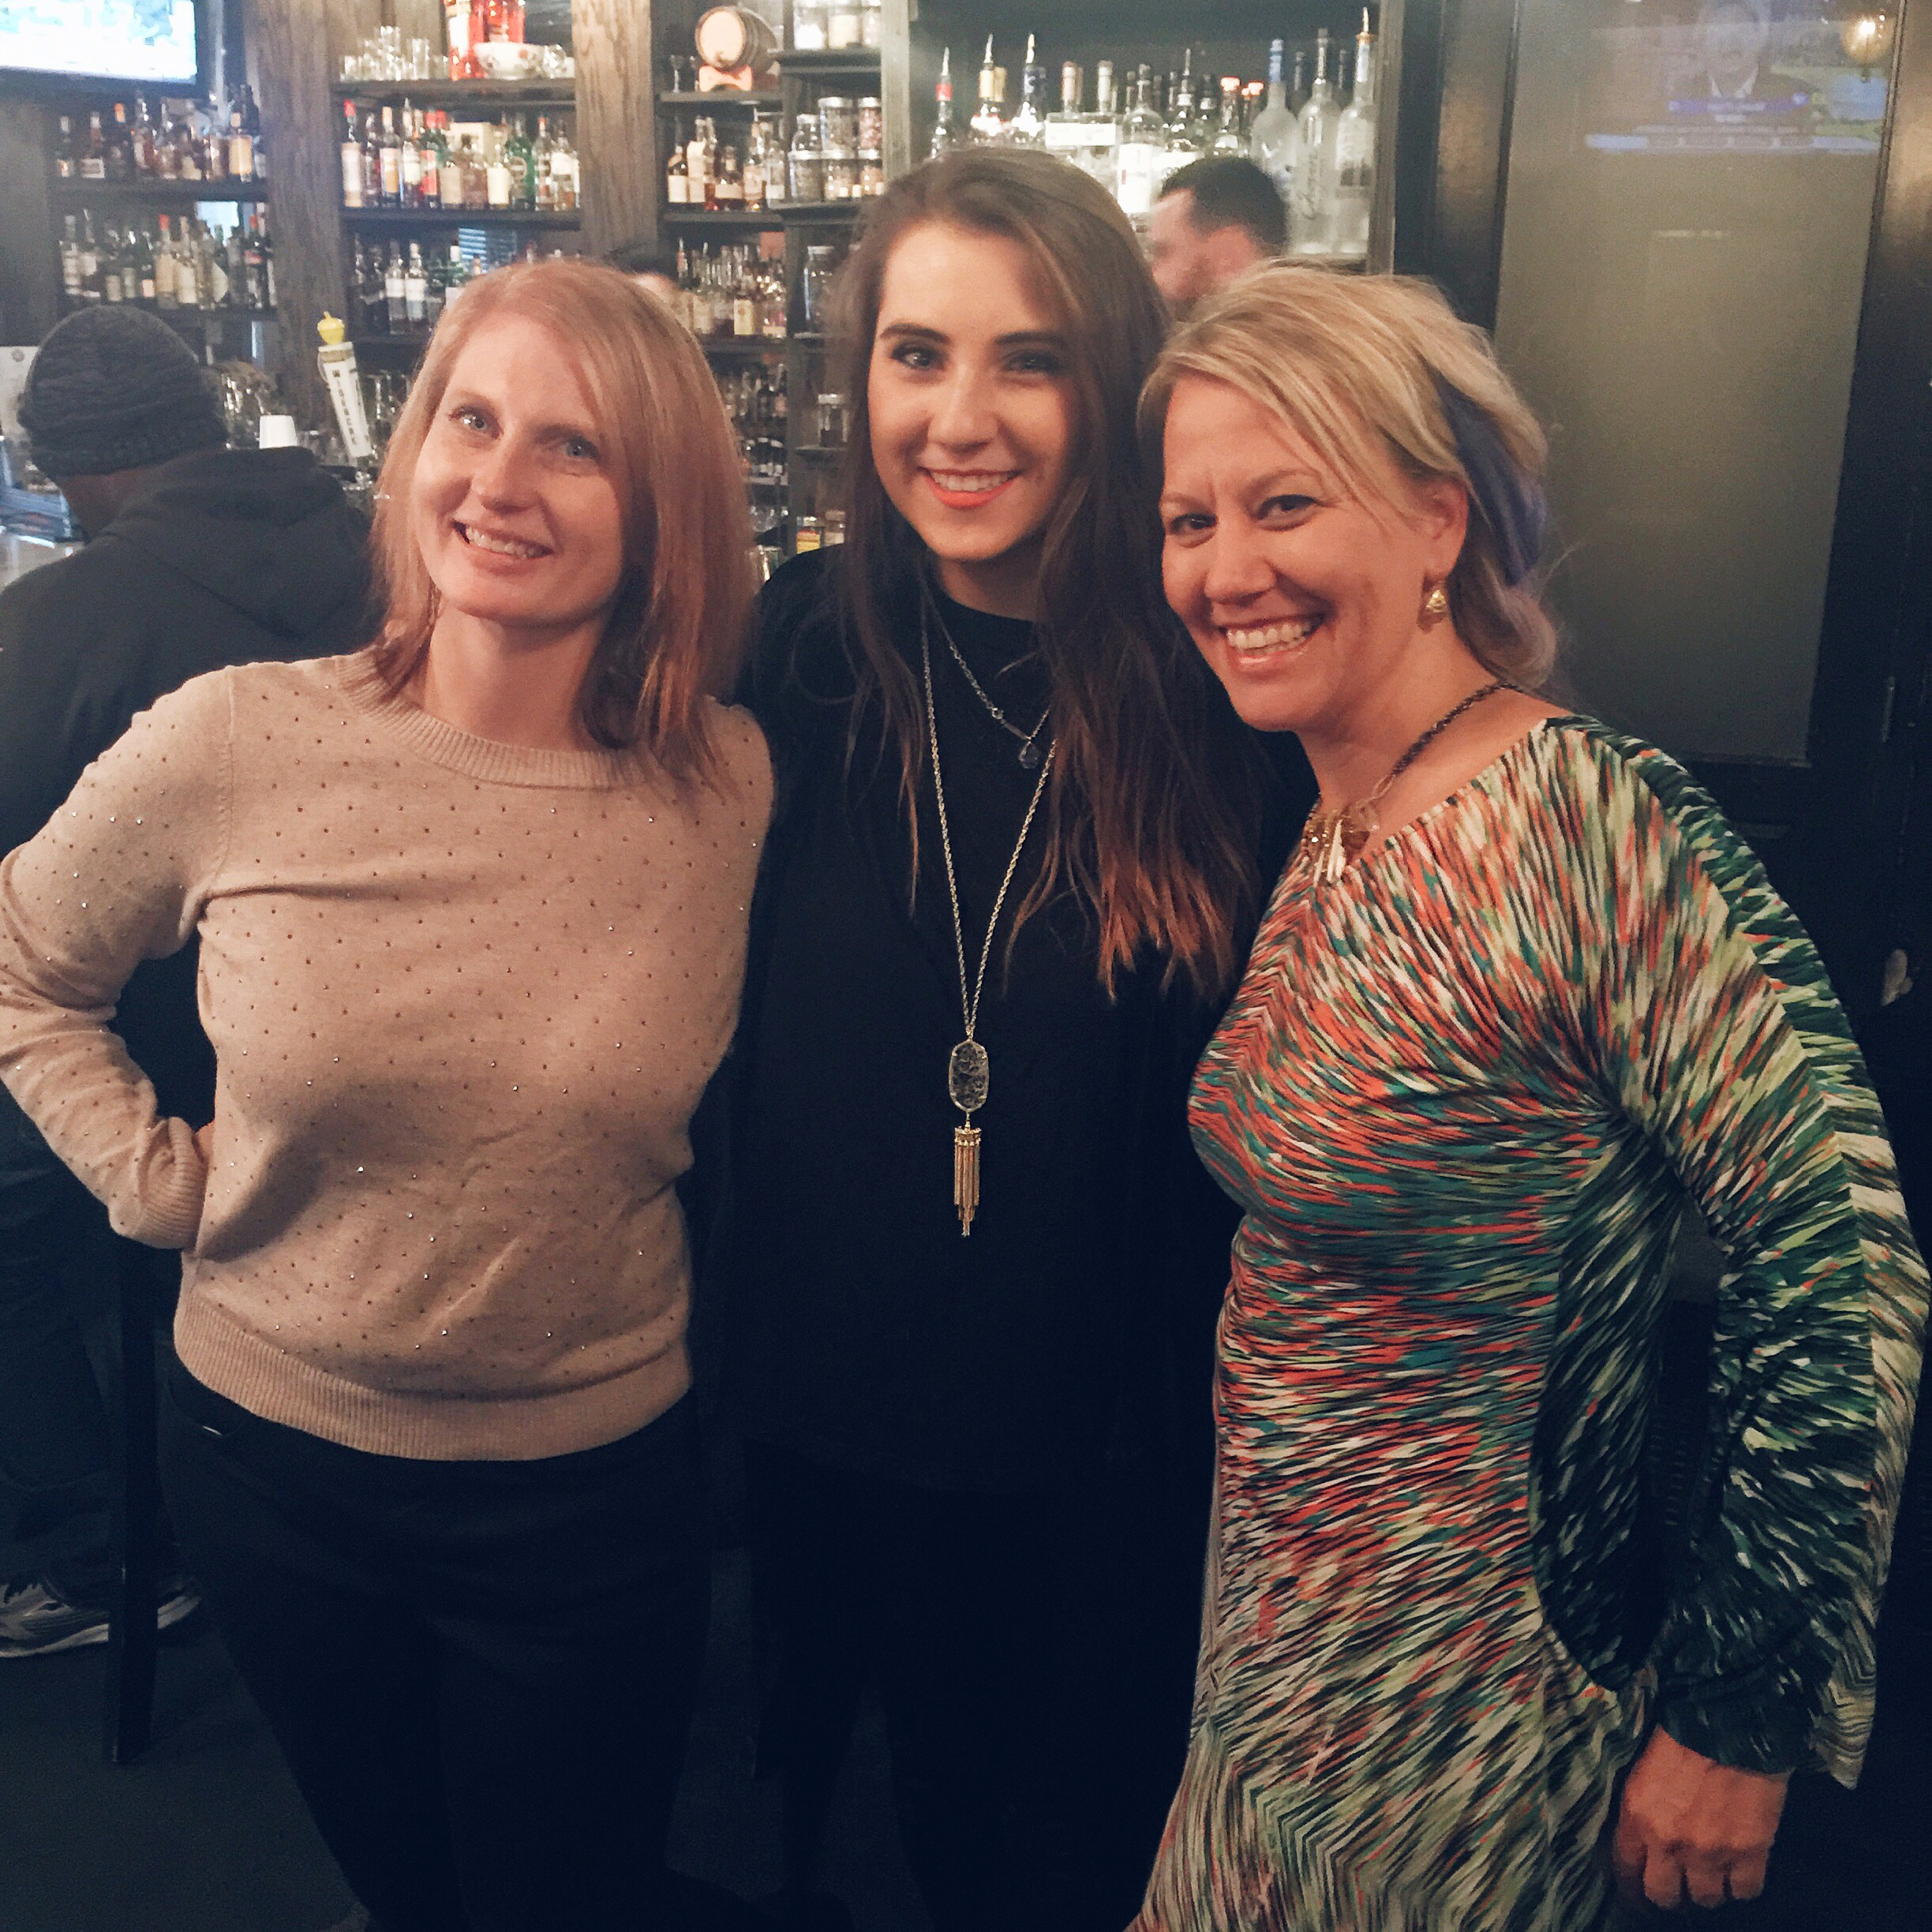 At the VIP Release Party with Jessica & Jenn